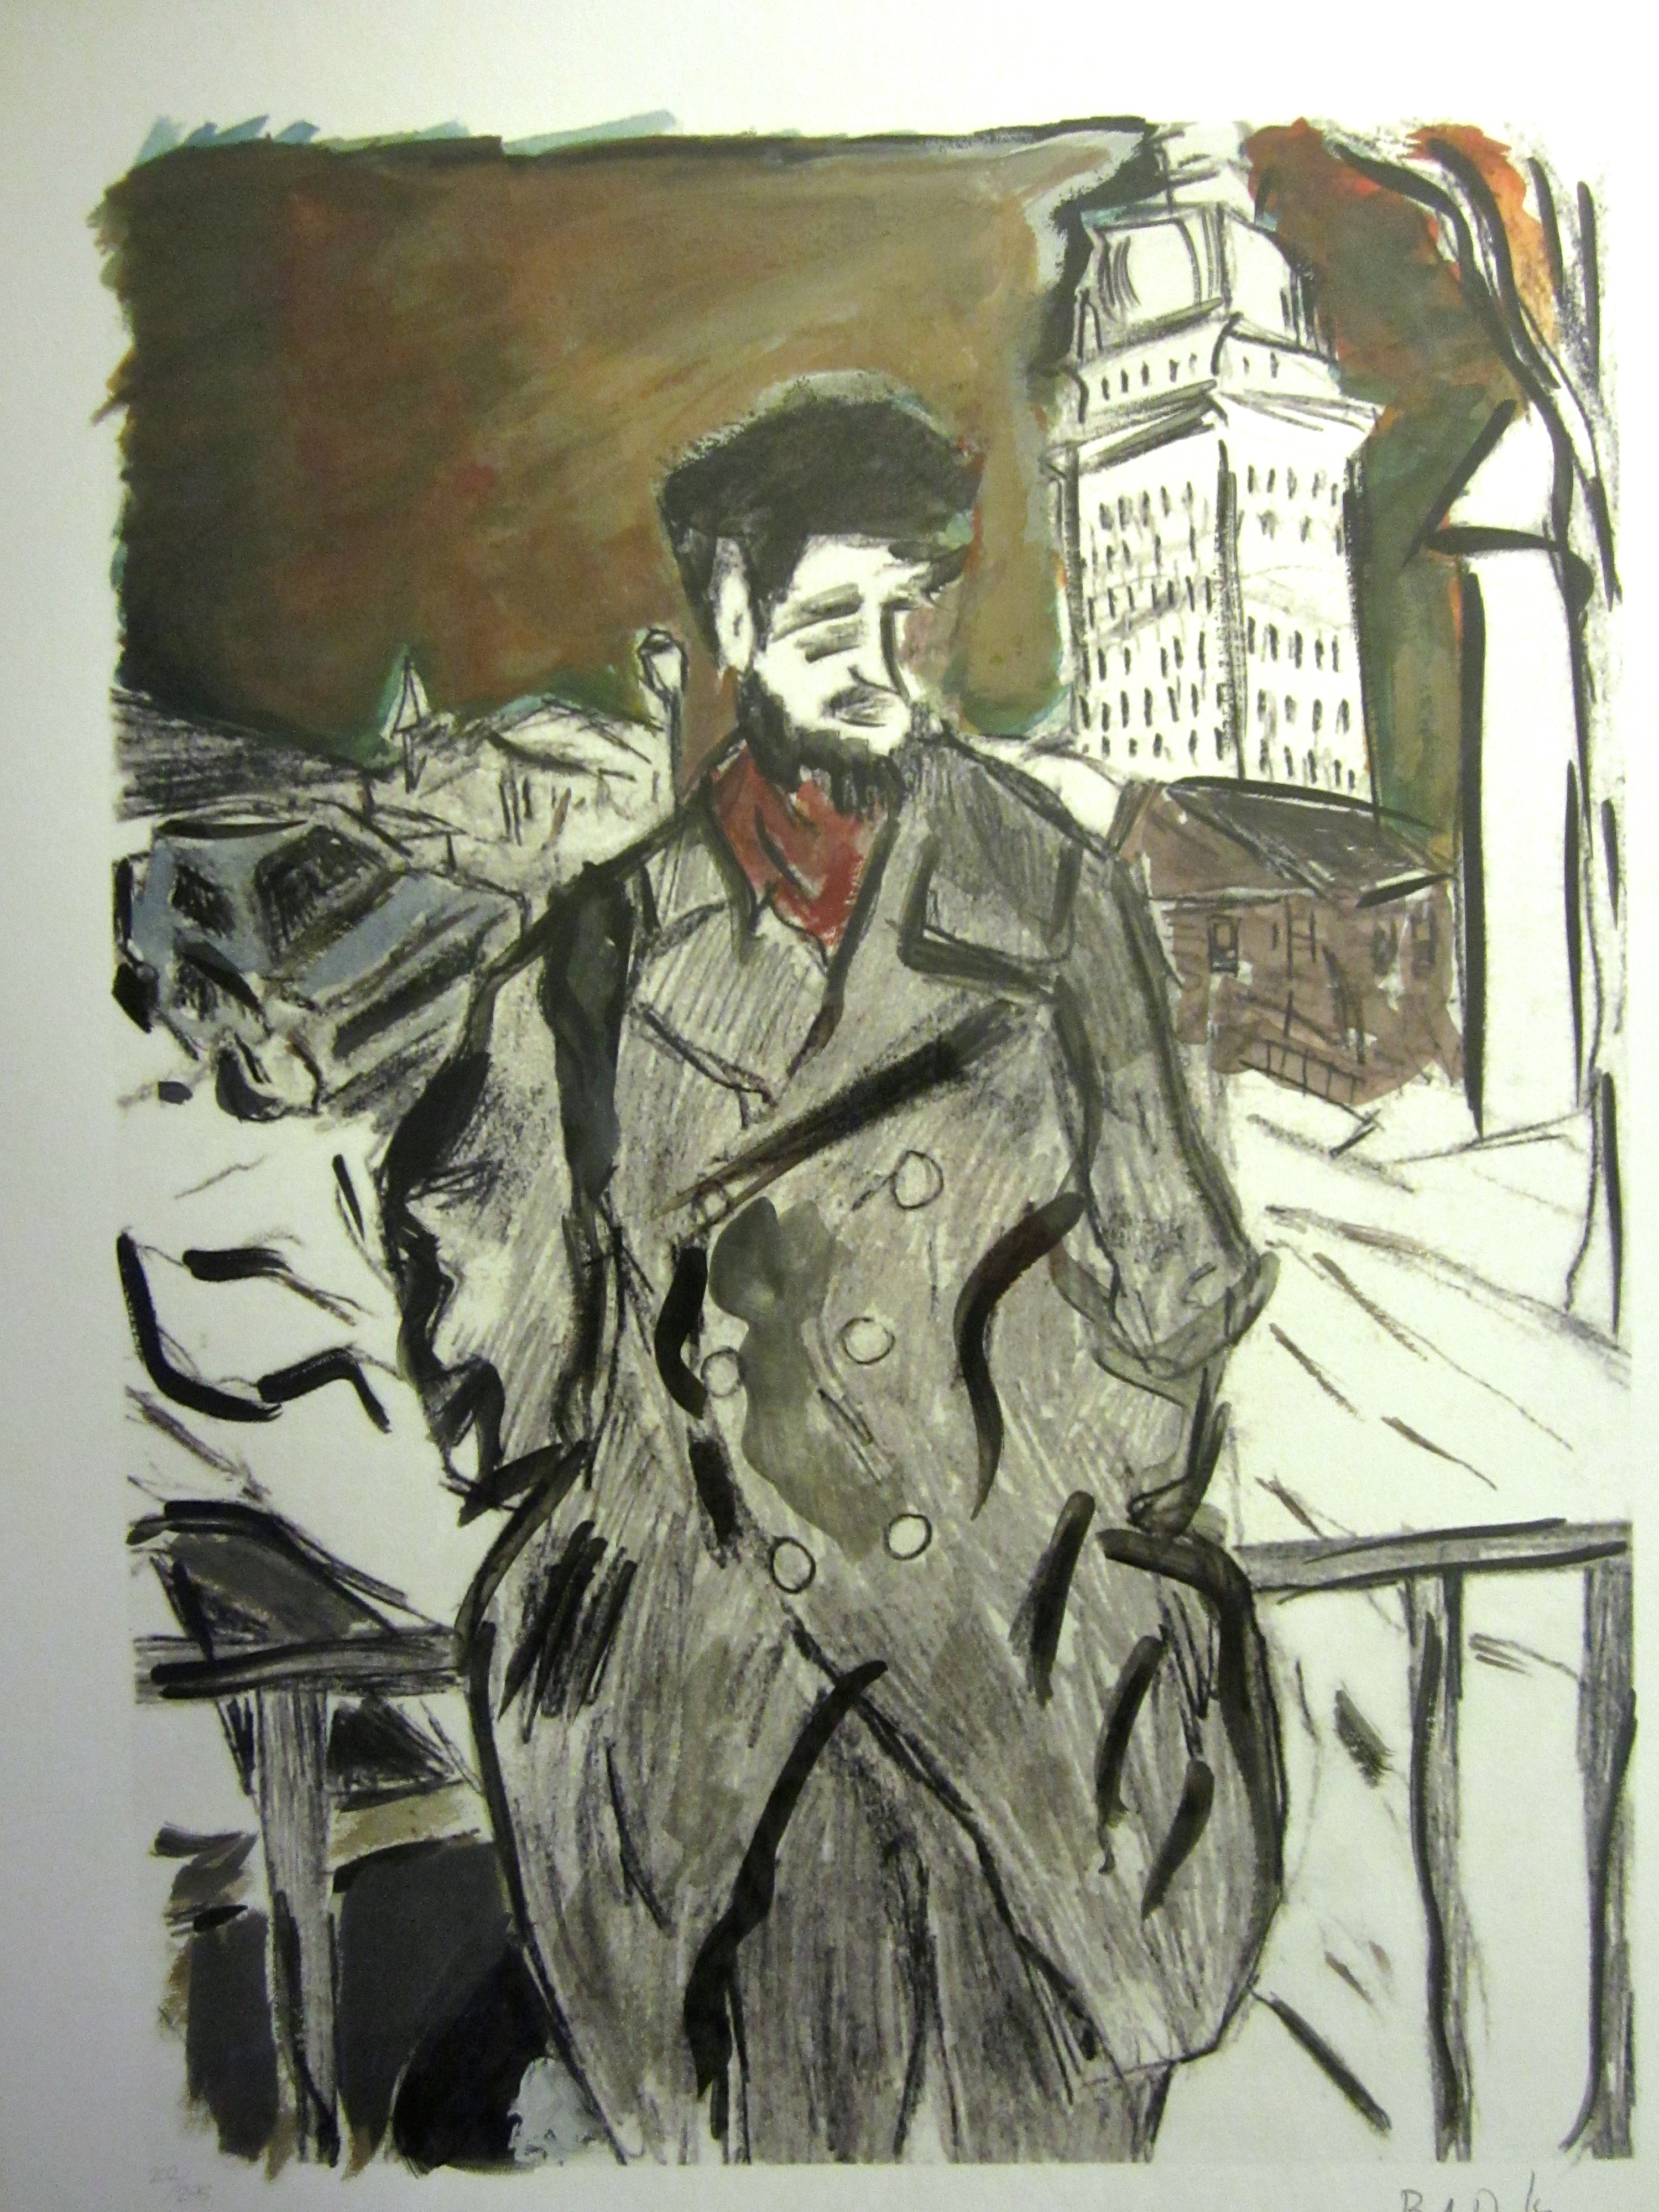 Man on a Bridge artwork by Bob Dylan - art listed for sale on Artplode